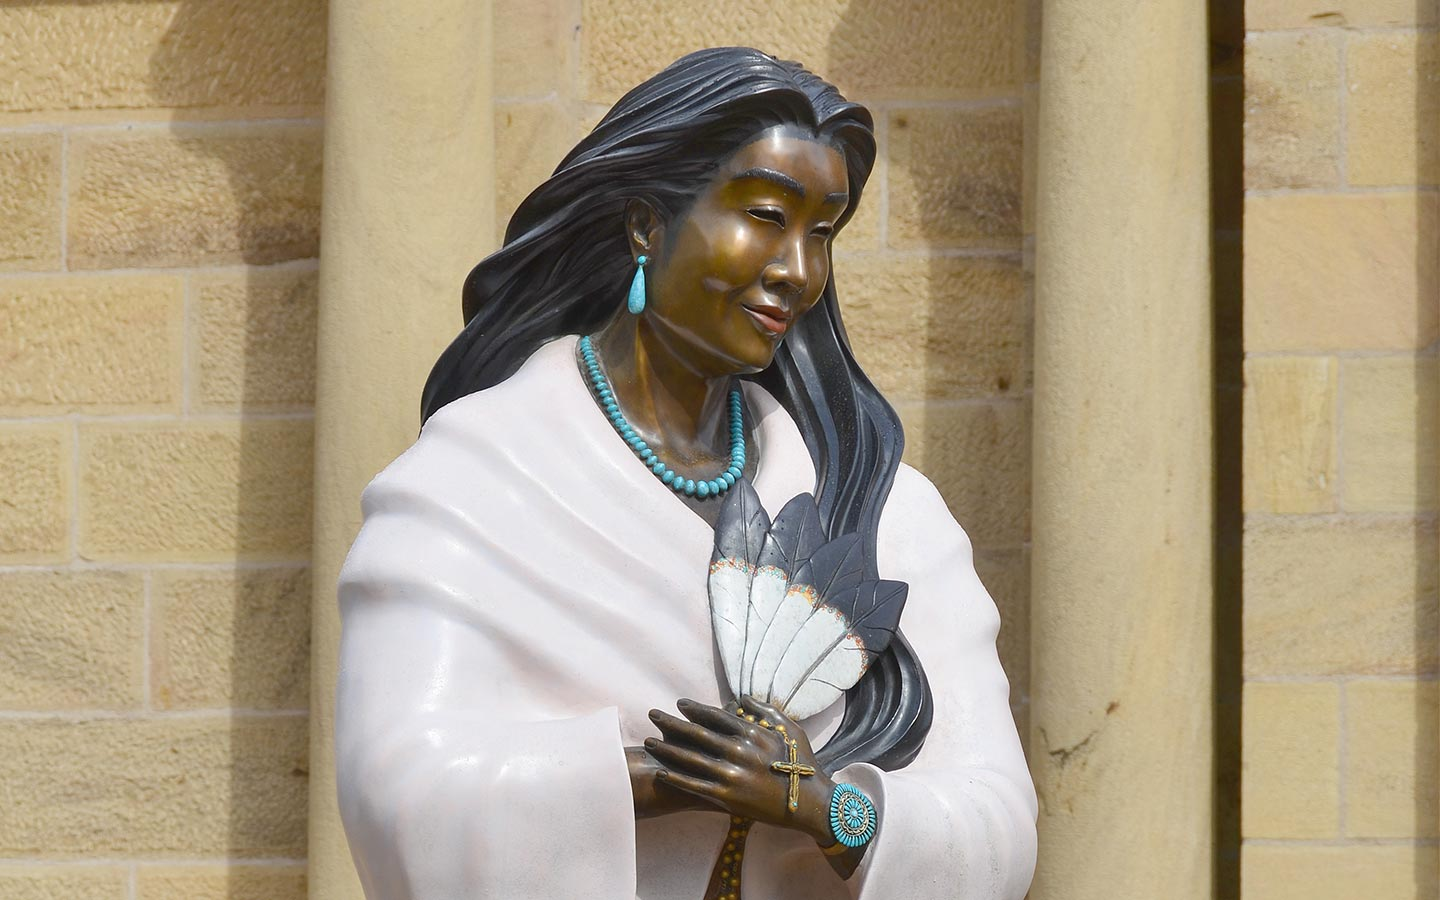 Statue outside of Santa fe Cathedral of Kateri Tekakwitha